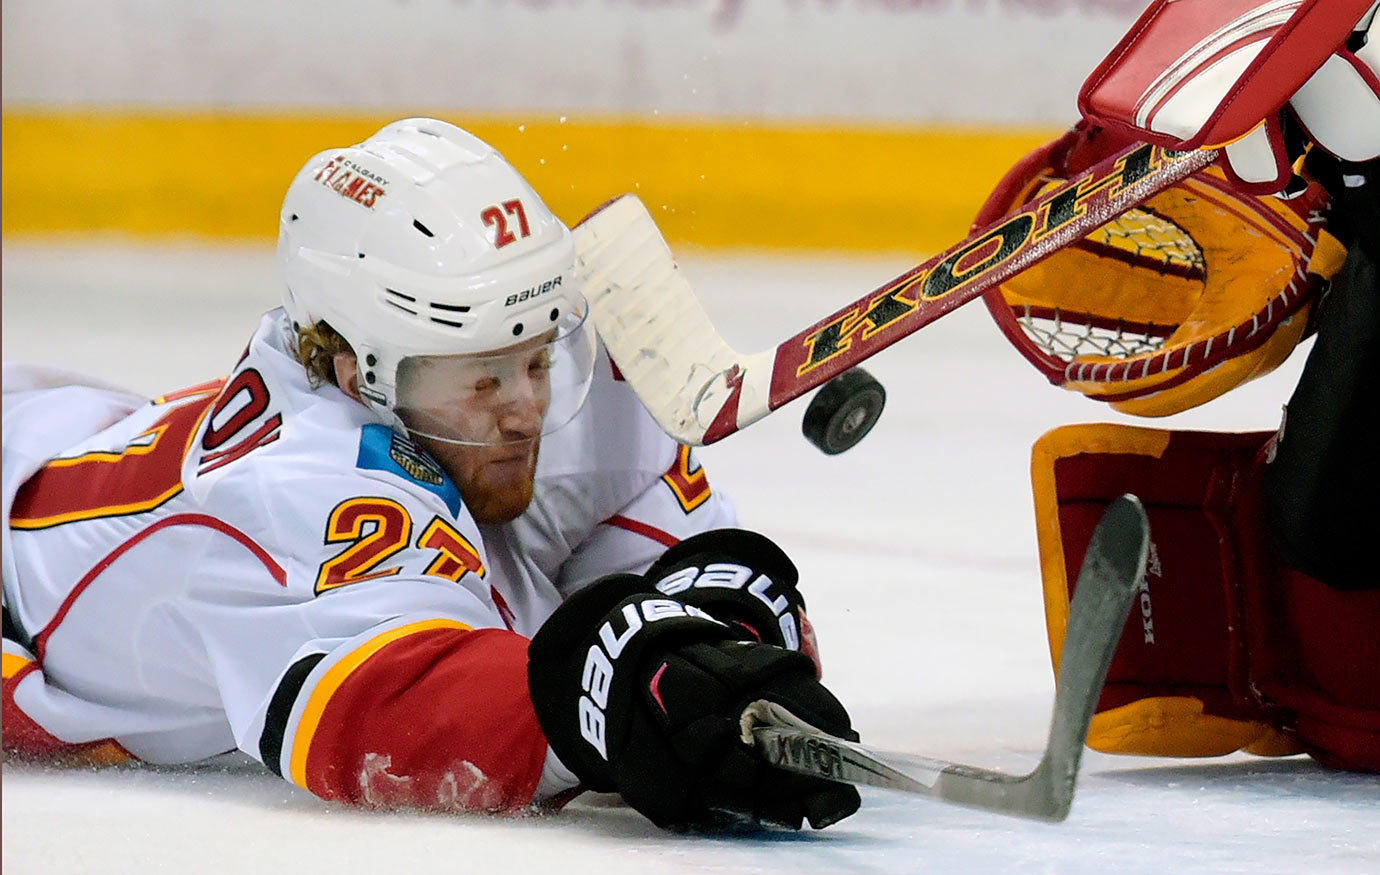 Calgary Flames defenseman Dougie Hamilton slides across the goal crease to knock away the puck during the third period of a game against the Buffalo Sabres in Buffalo, N.Y.